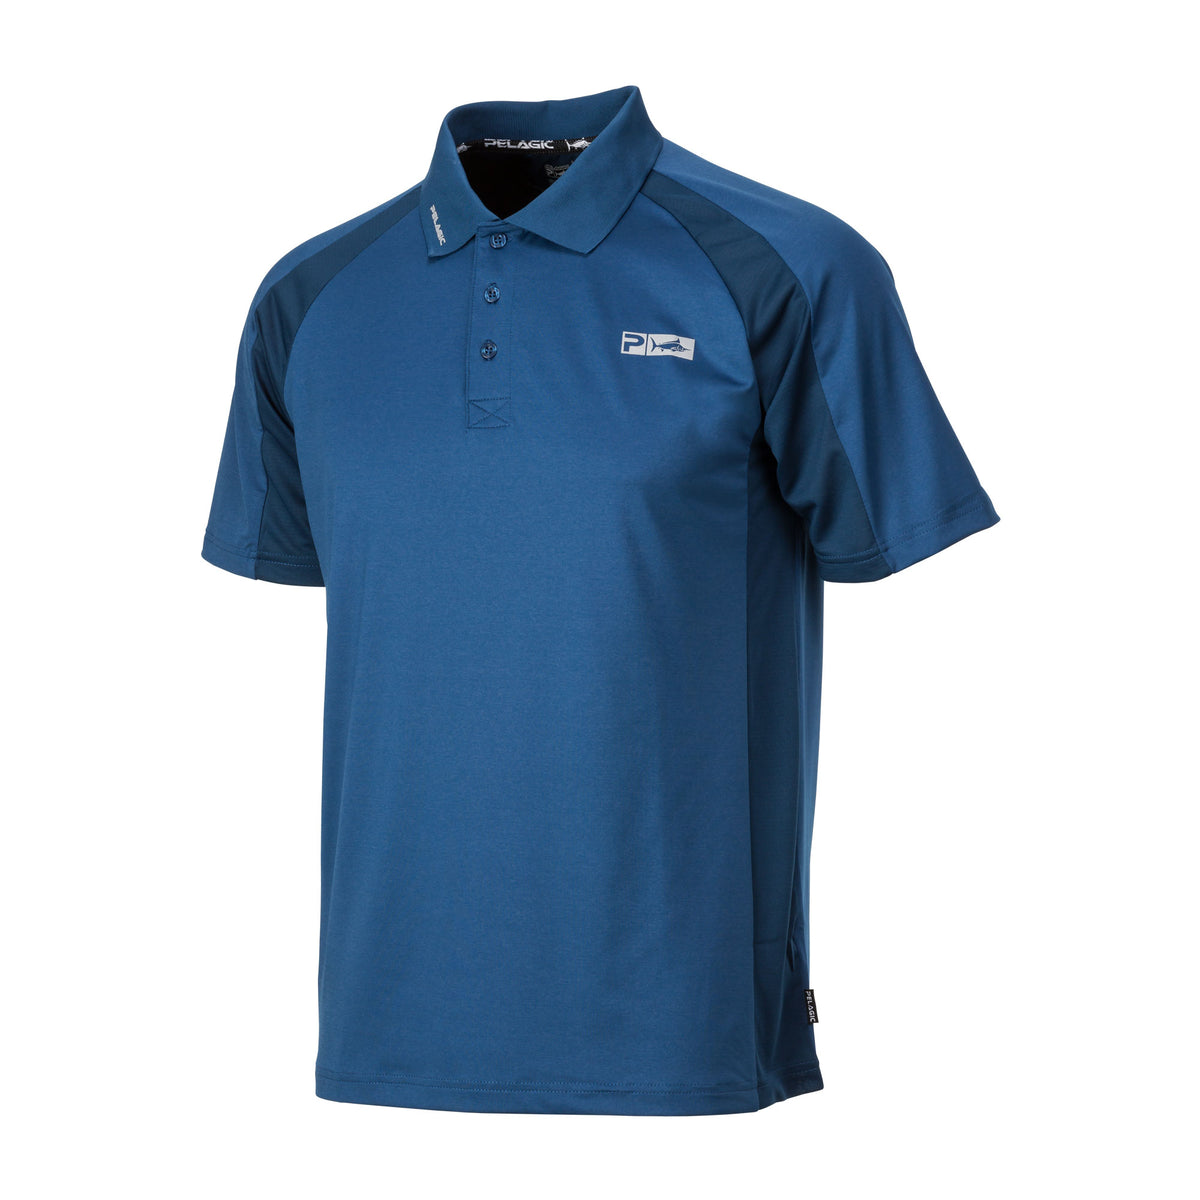 Performance Polo Pro Big Image - 1